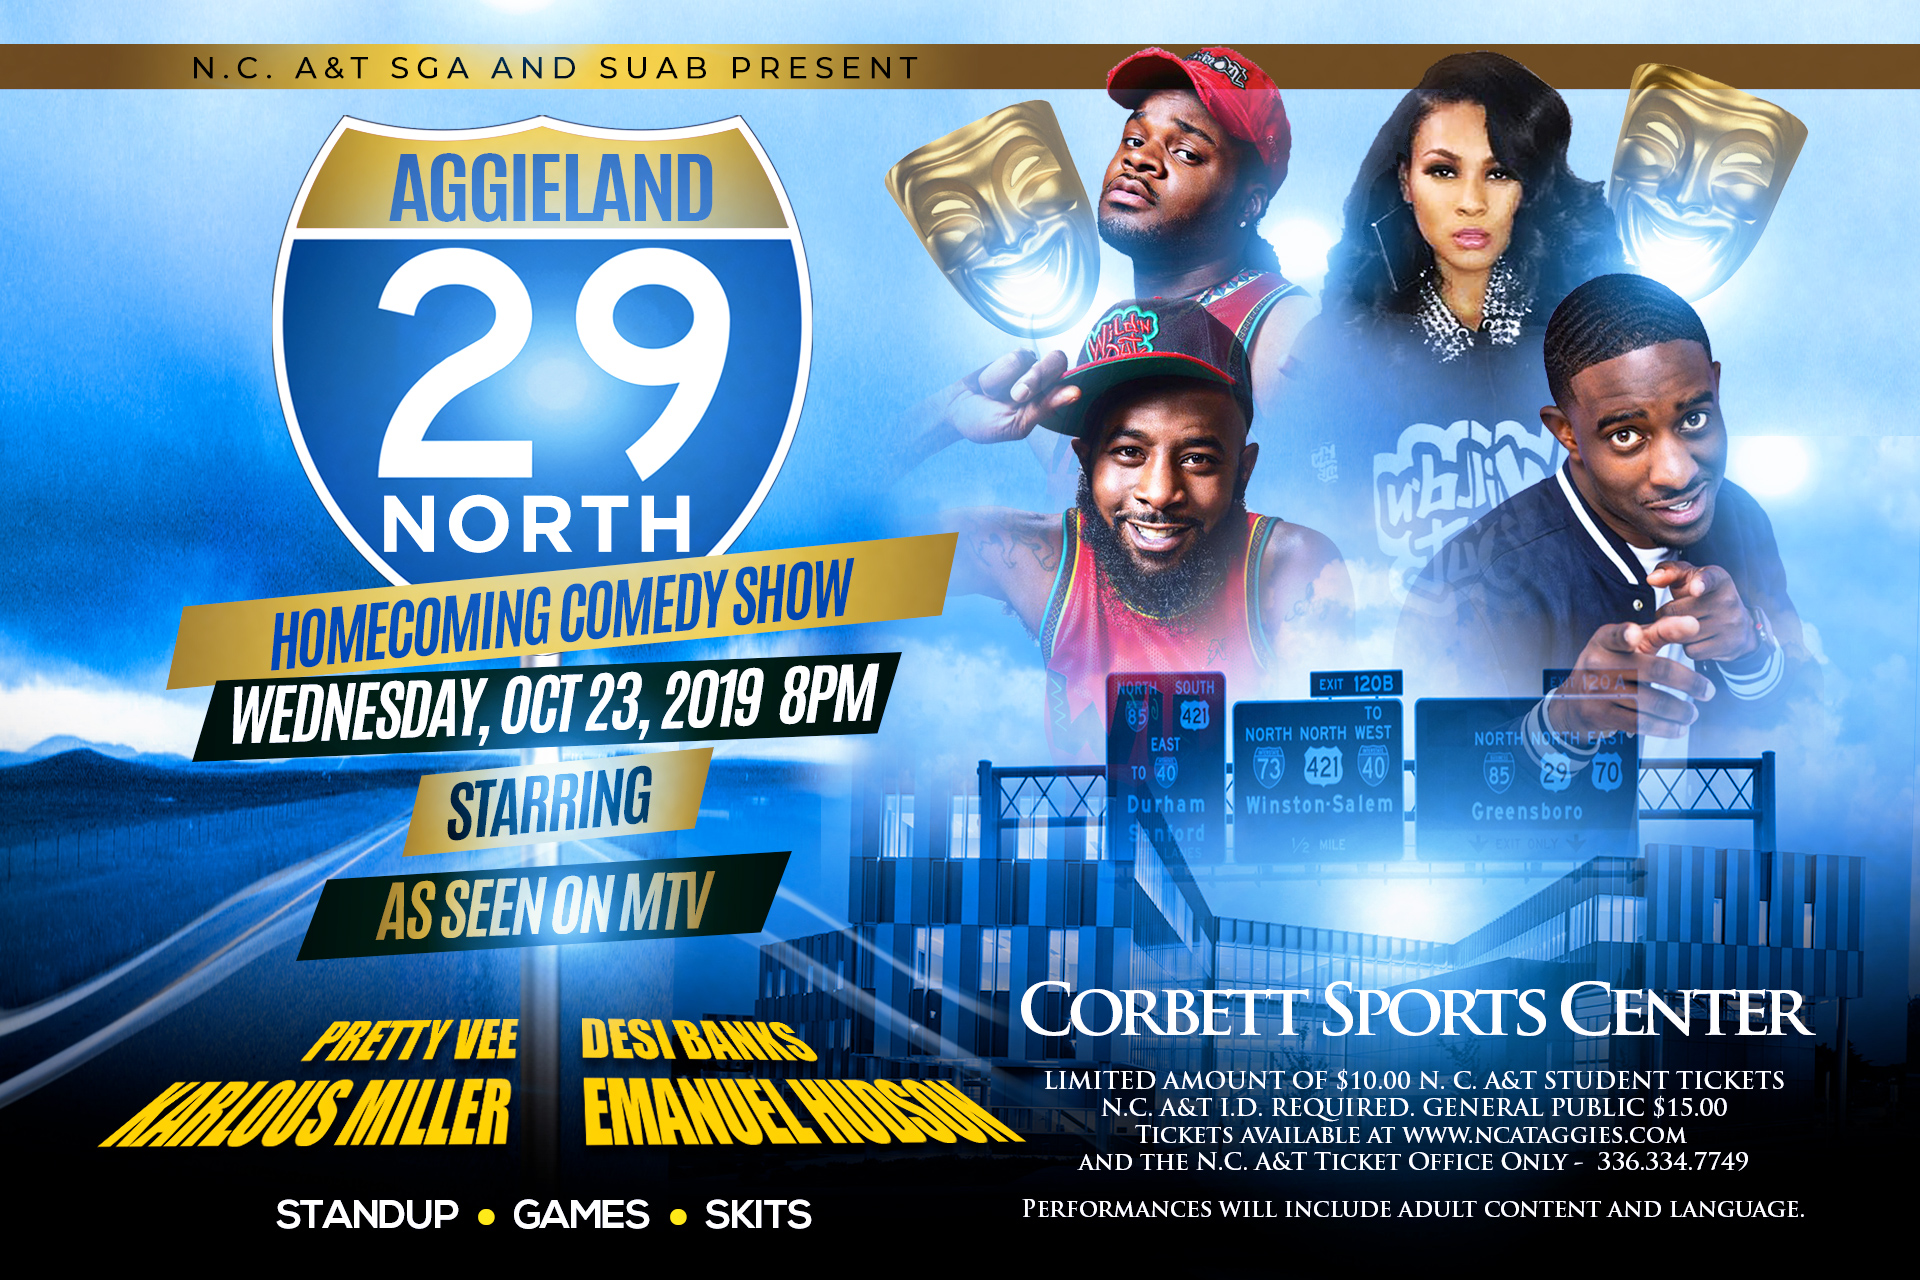 North Carolina A&T Homecoming Comedy Show with Karlous Miller, Emmanuel Hudson, Desi Banks, and Pretty Vee